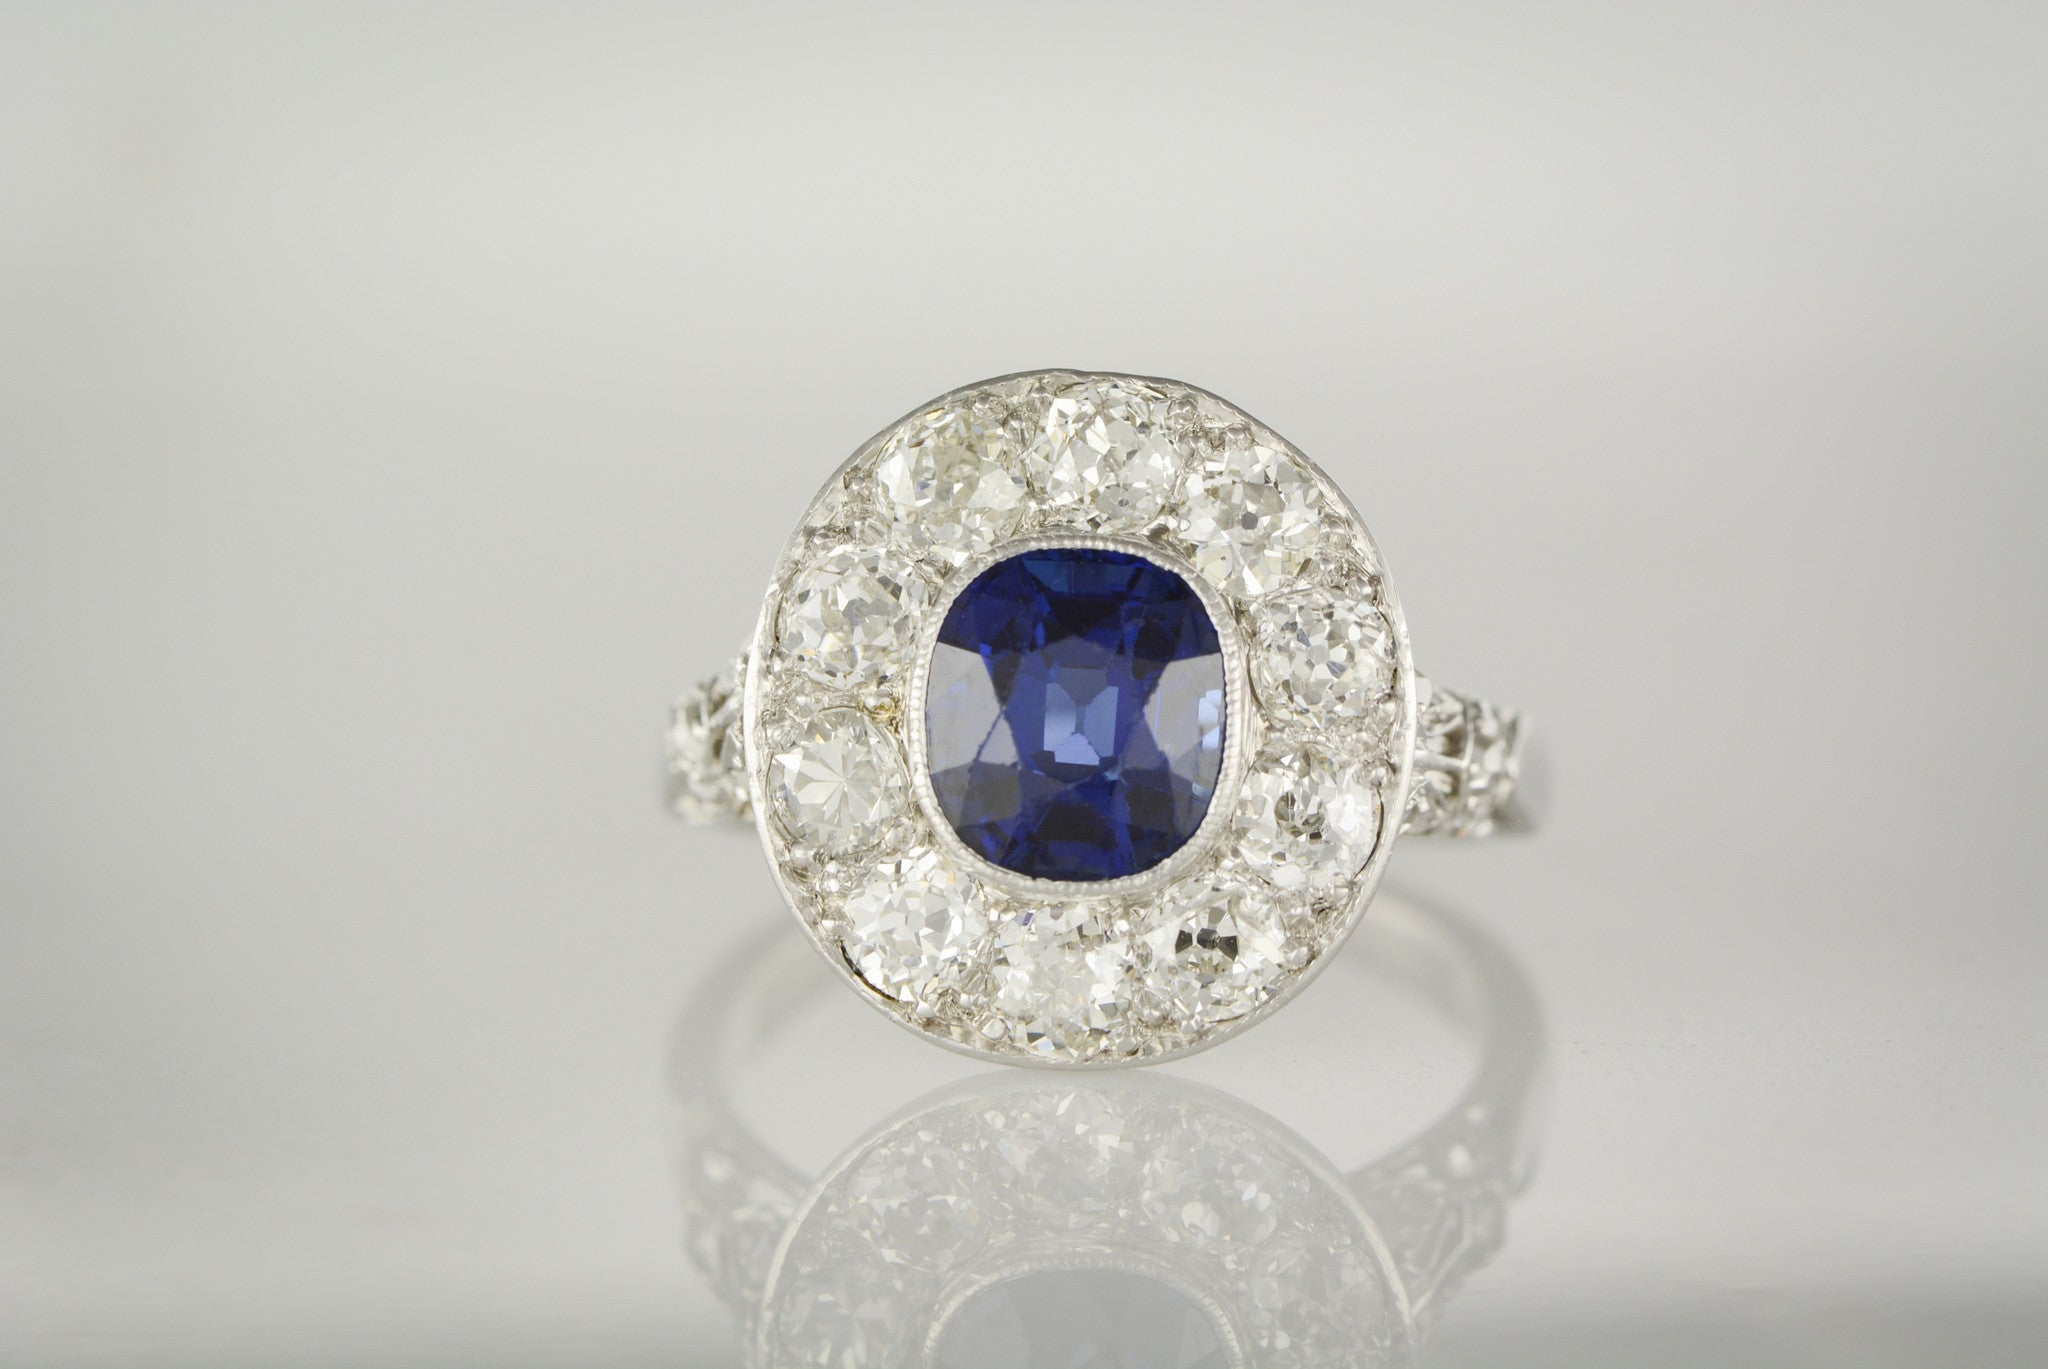 Art Deco Anniversary Or Engagement Ring 1 80 Carat Oval Cushion Cut Natural Sapphire With 2 00 Ctw Old Mine And Antique Rose Cut Diamond Halo Accents